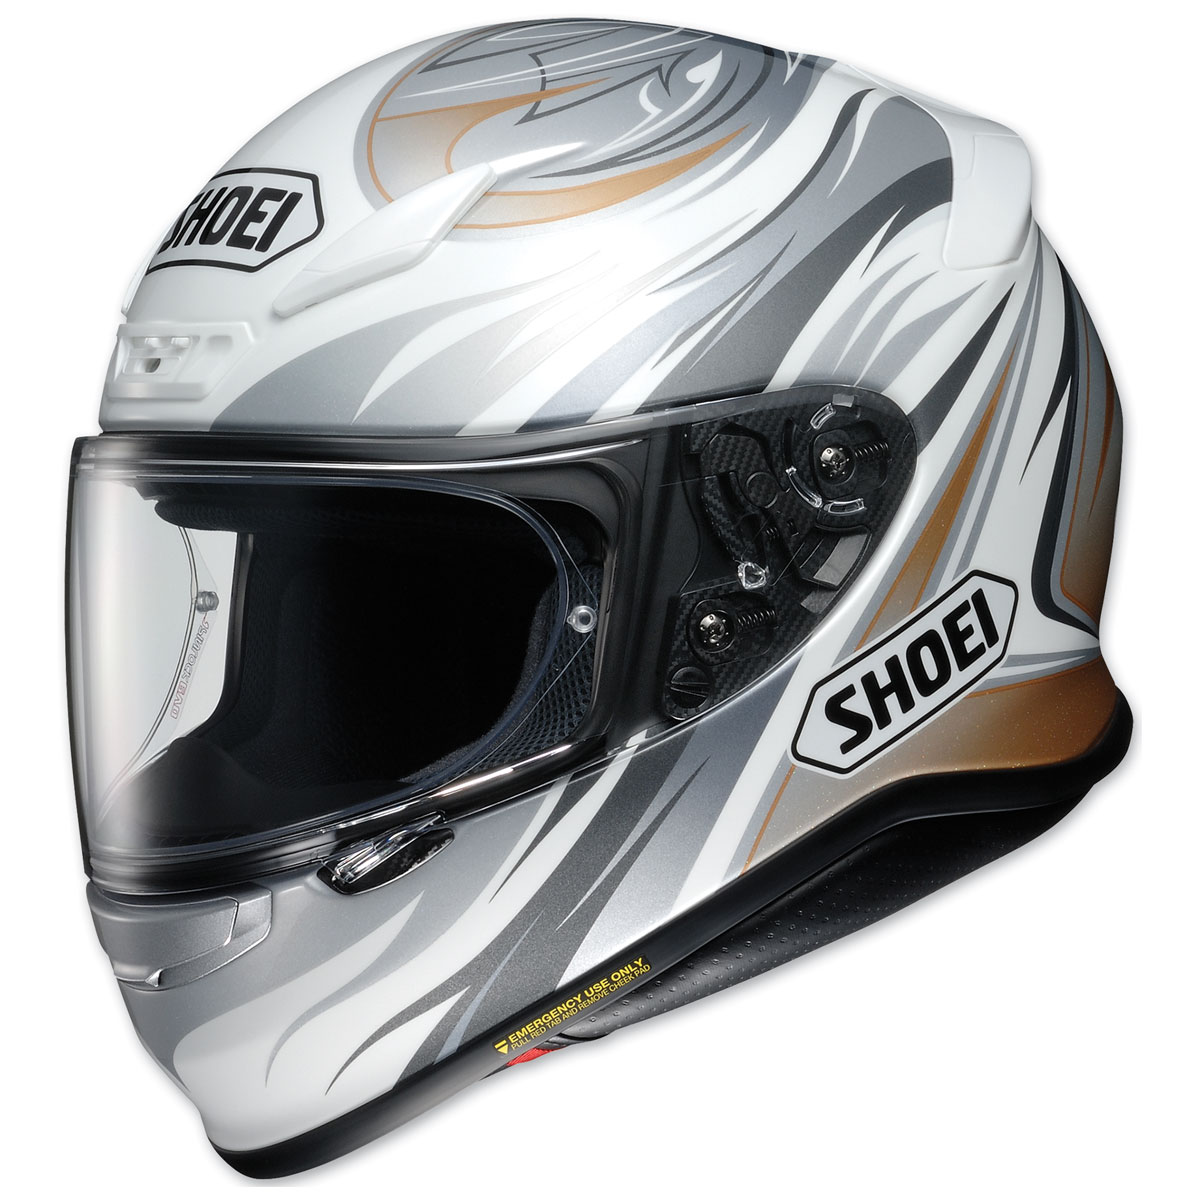 Shoei RF-1200 Incision White/Gray/Gold Full Face Helmet